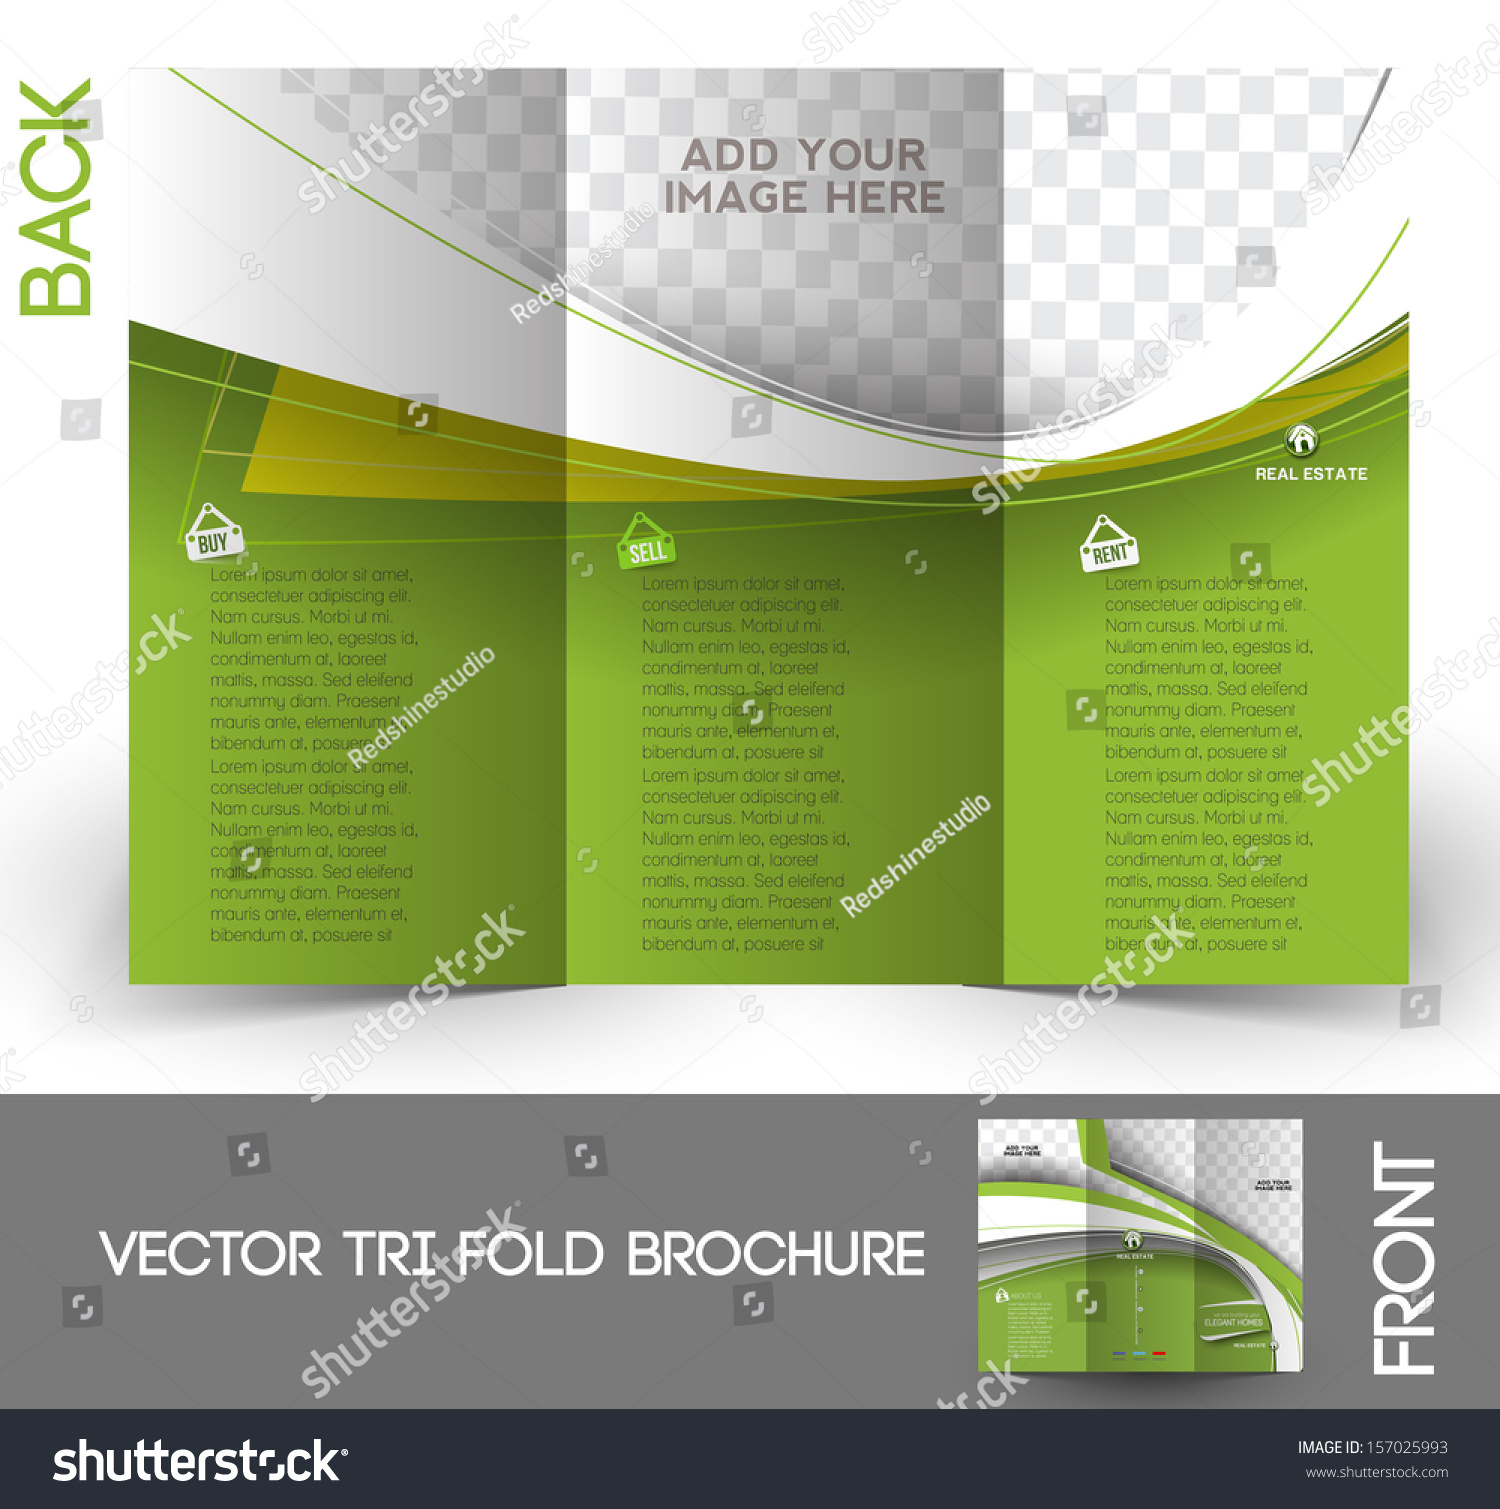 real estate trifold brochure design stock vector  real estate tri fold brochure design